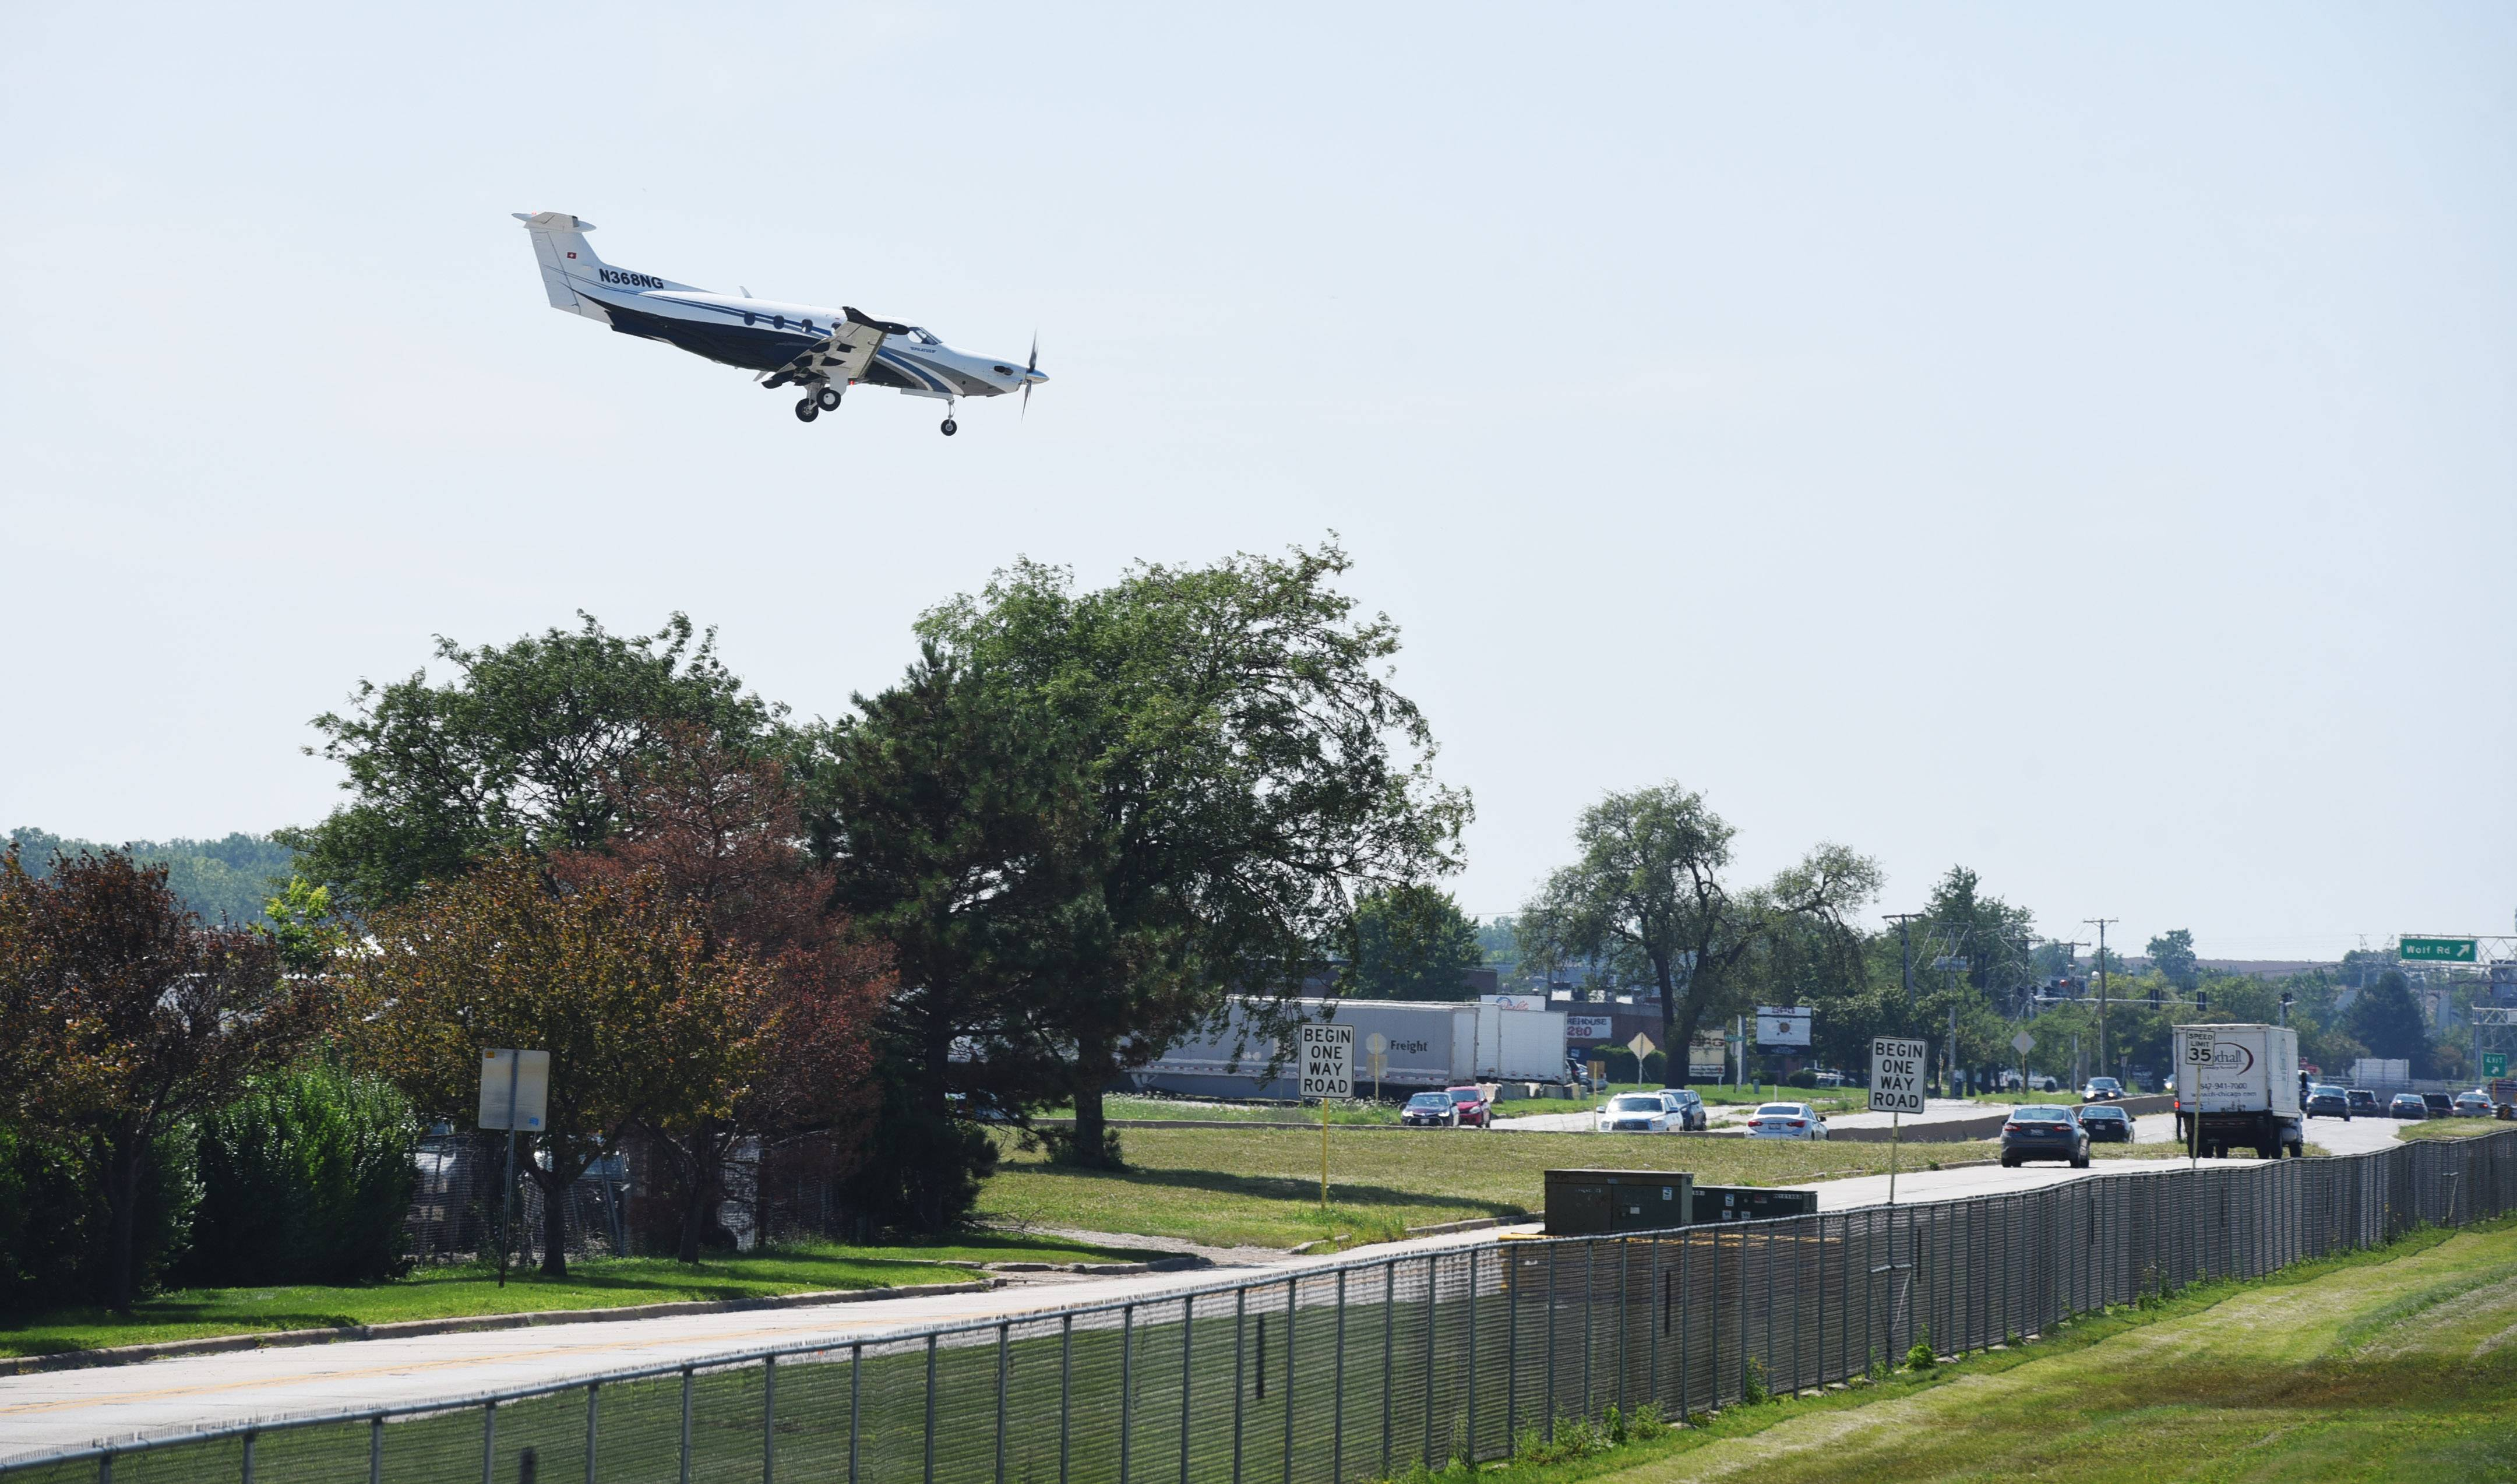 An aircraft passes over Willow/Palatine Road in Prospect Heights before landing at Chicago Executive Airport.